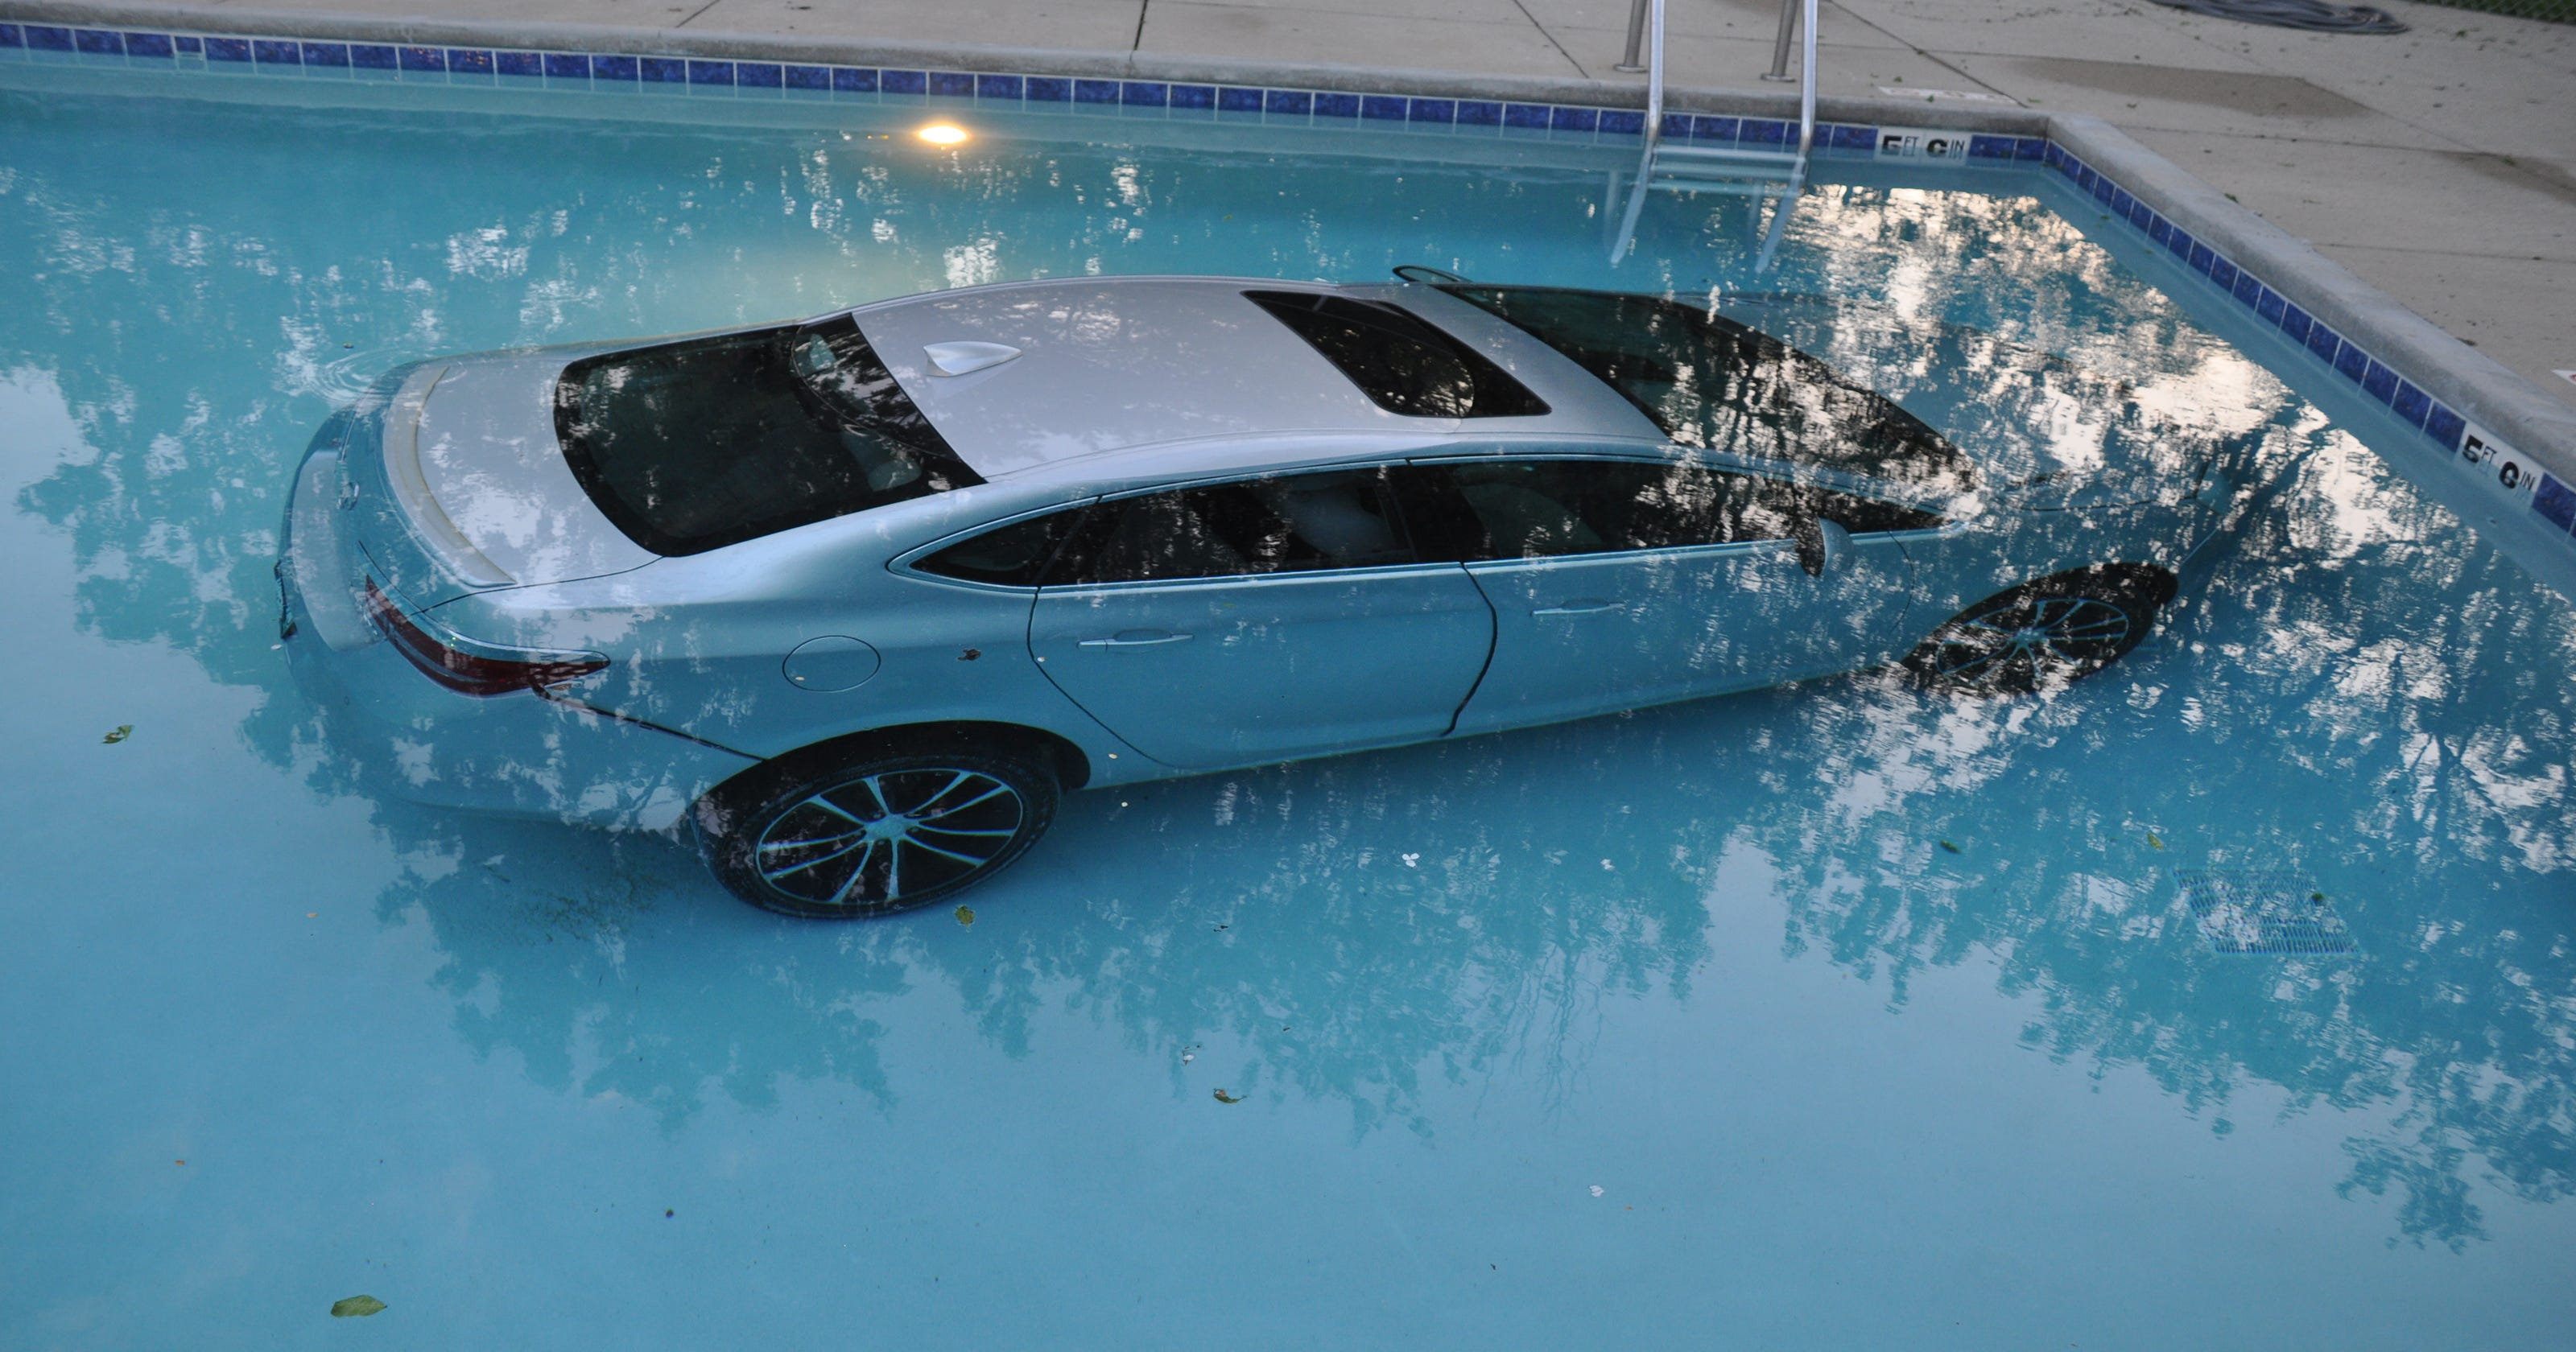 Car Ends Up At Bottom Of Waukesha Apartment Pool In Mishap - Ottawa kansas car show 2018